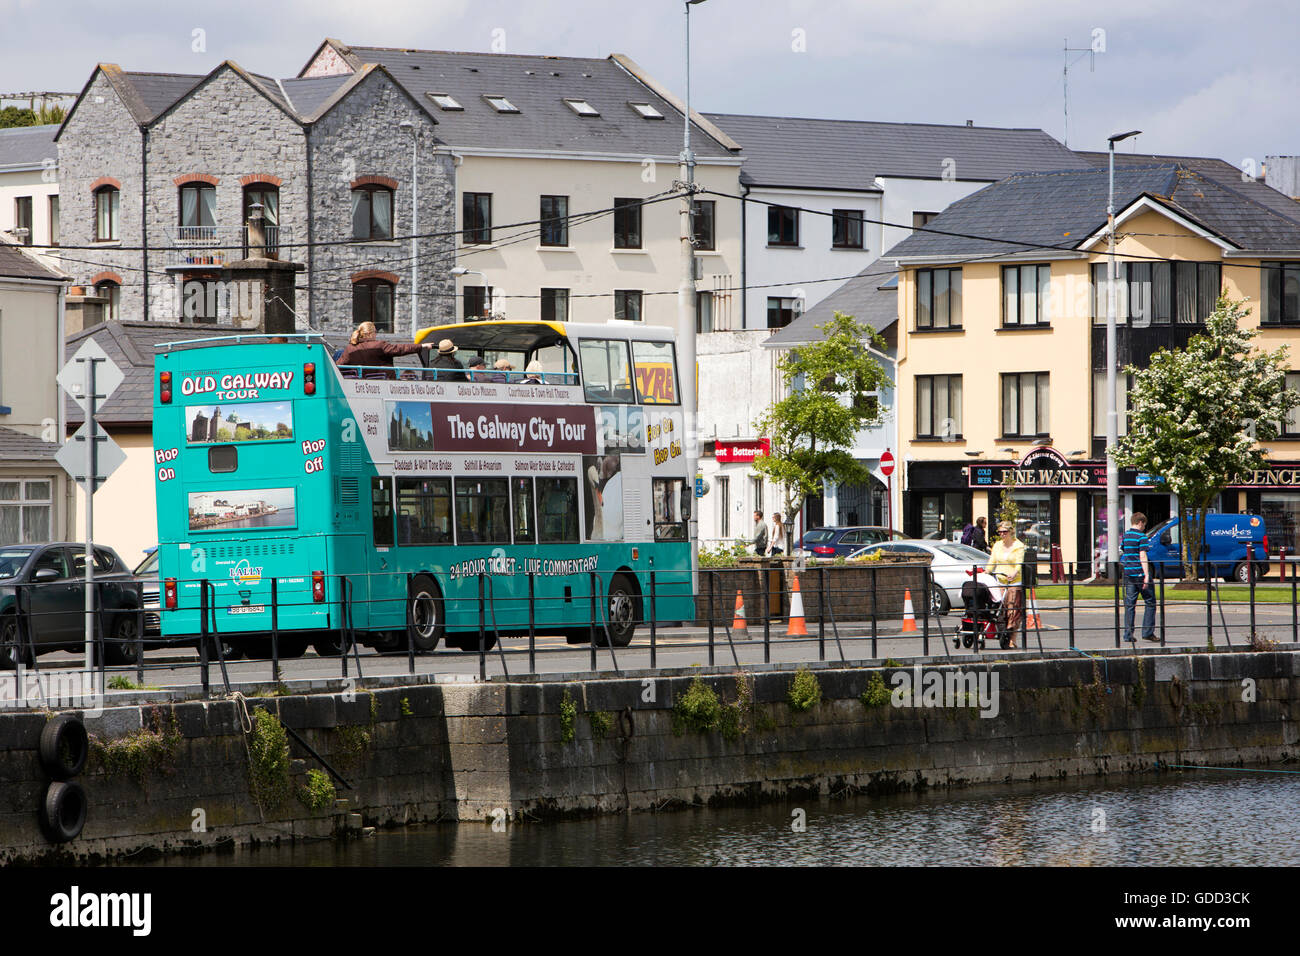 Ireland, Co Galway, Galway, Claddagh Quay, old Galway city tour open topped bus - Stock Image